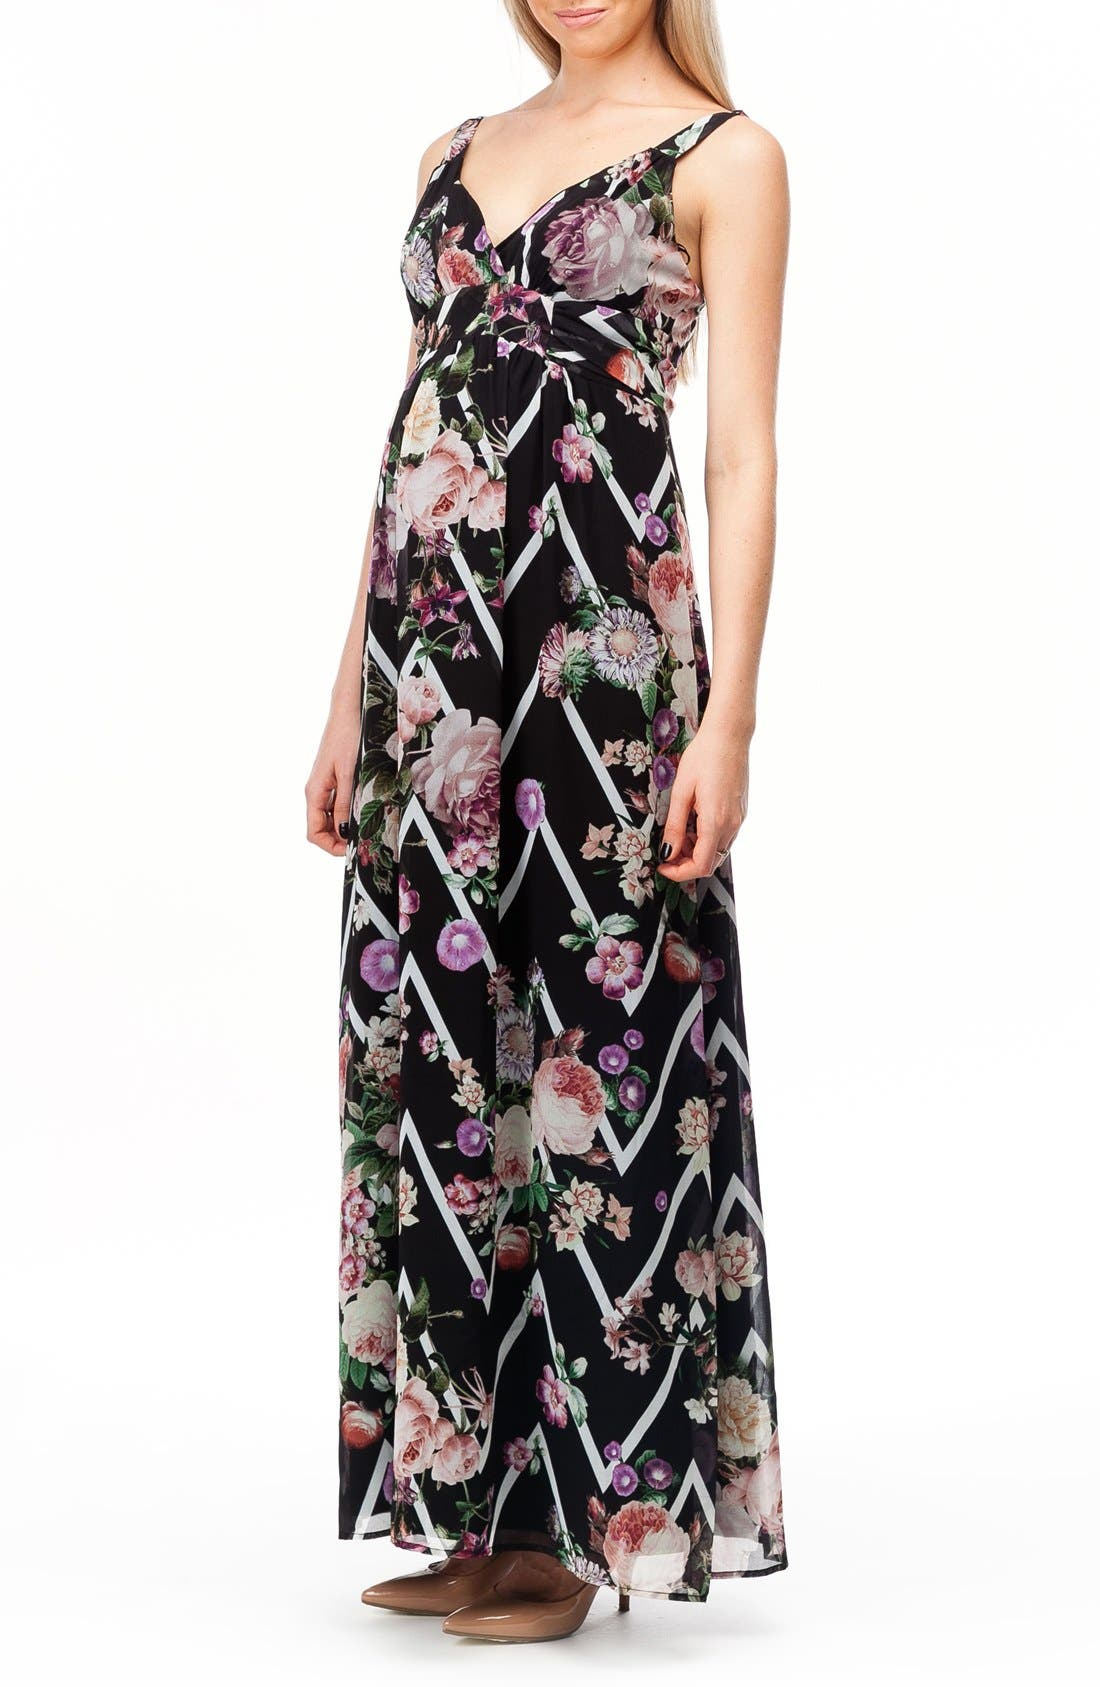 Murano Maternity Maxi Dress,                             Alternate thumbnail 4, color,                             FLOWER ZIGZAG